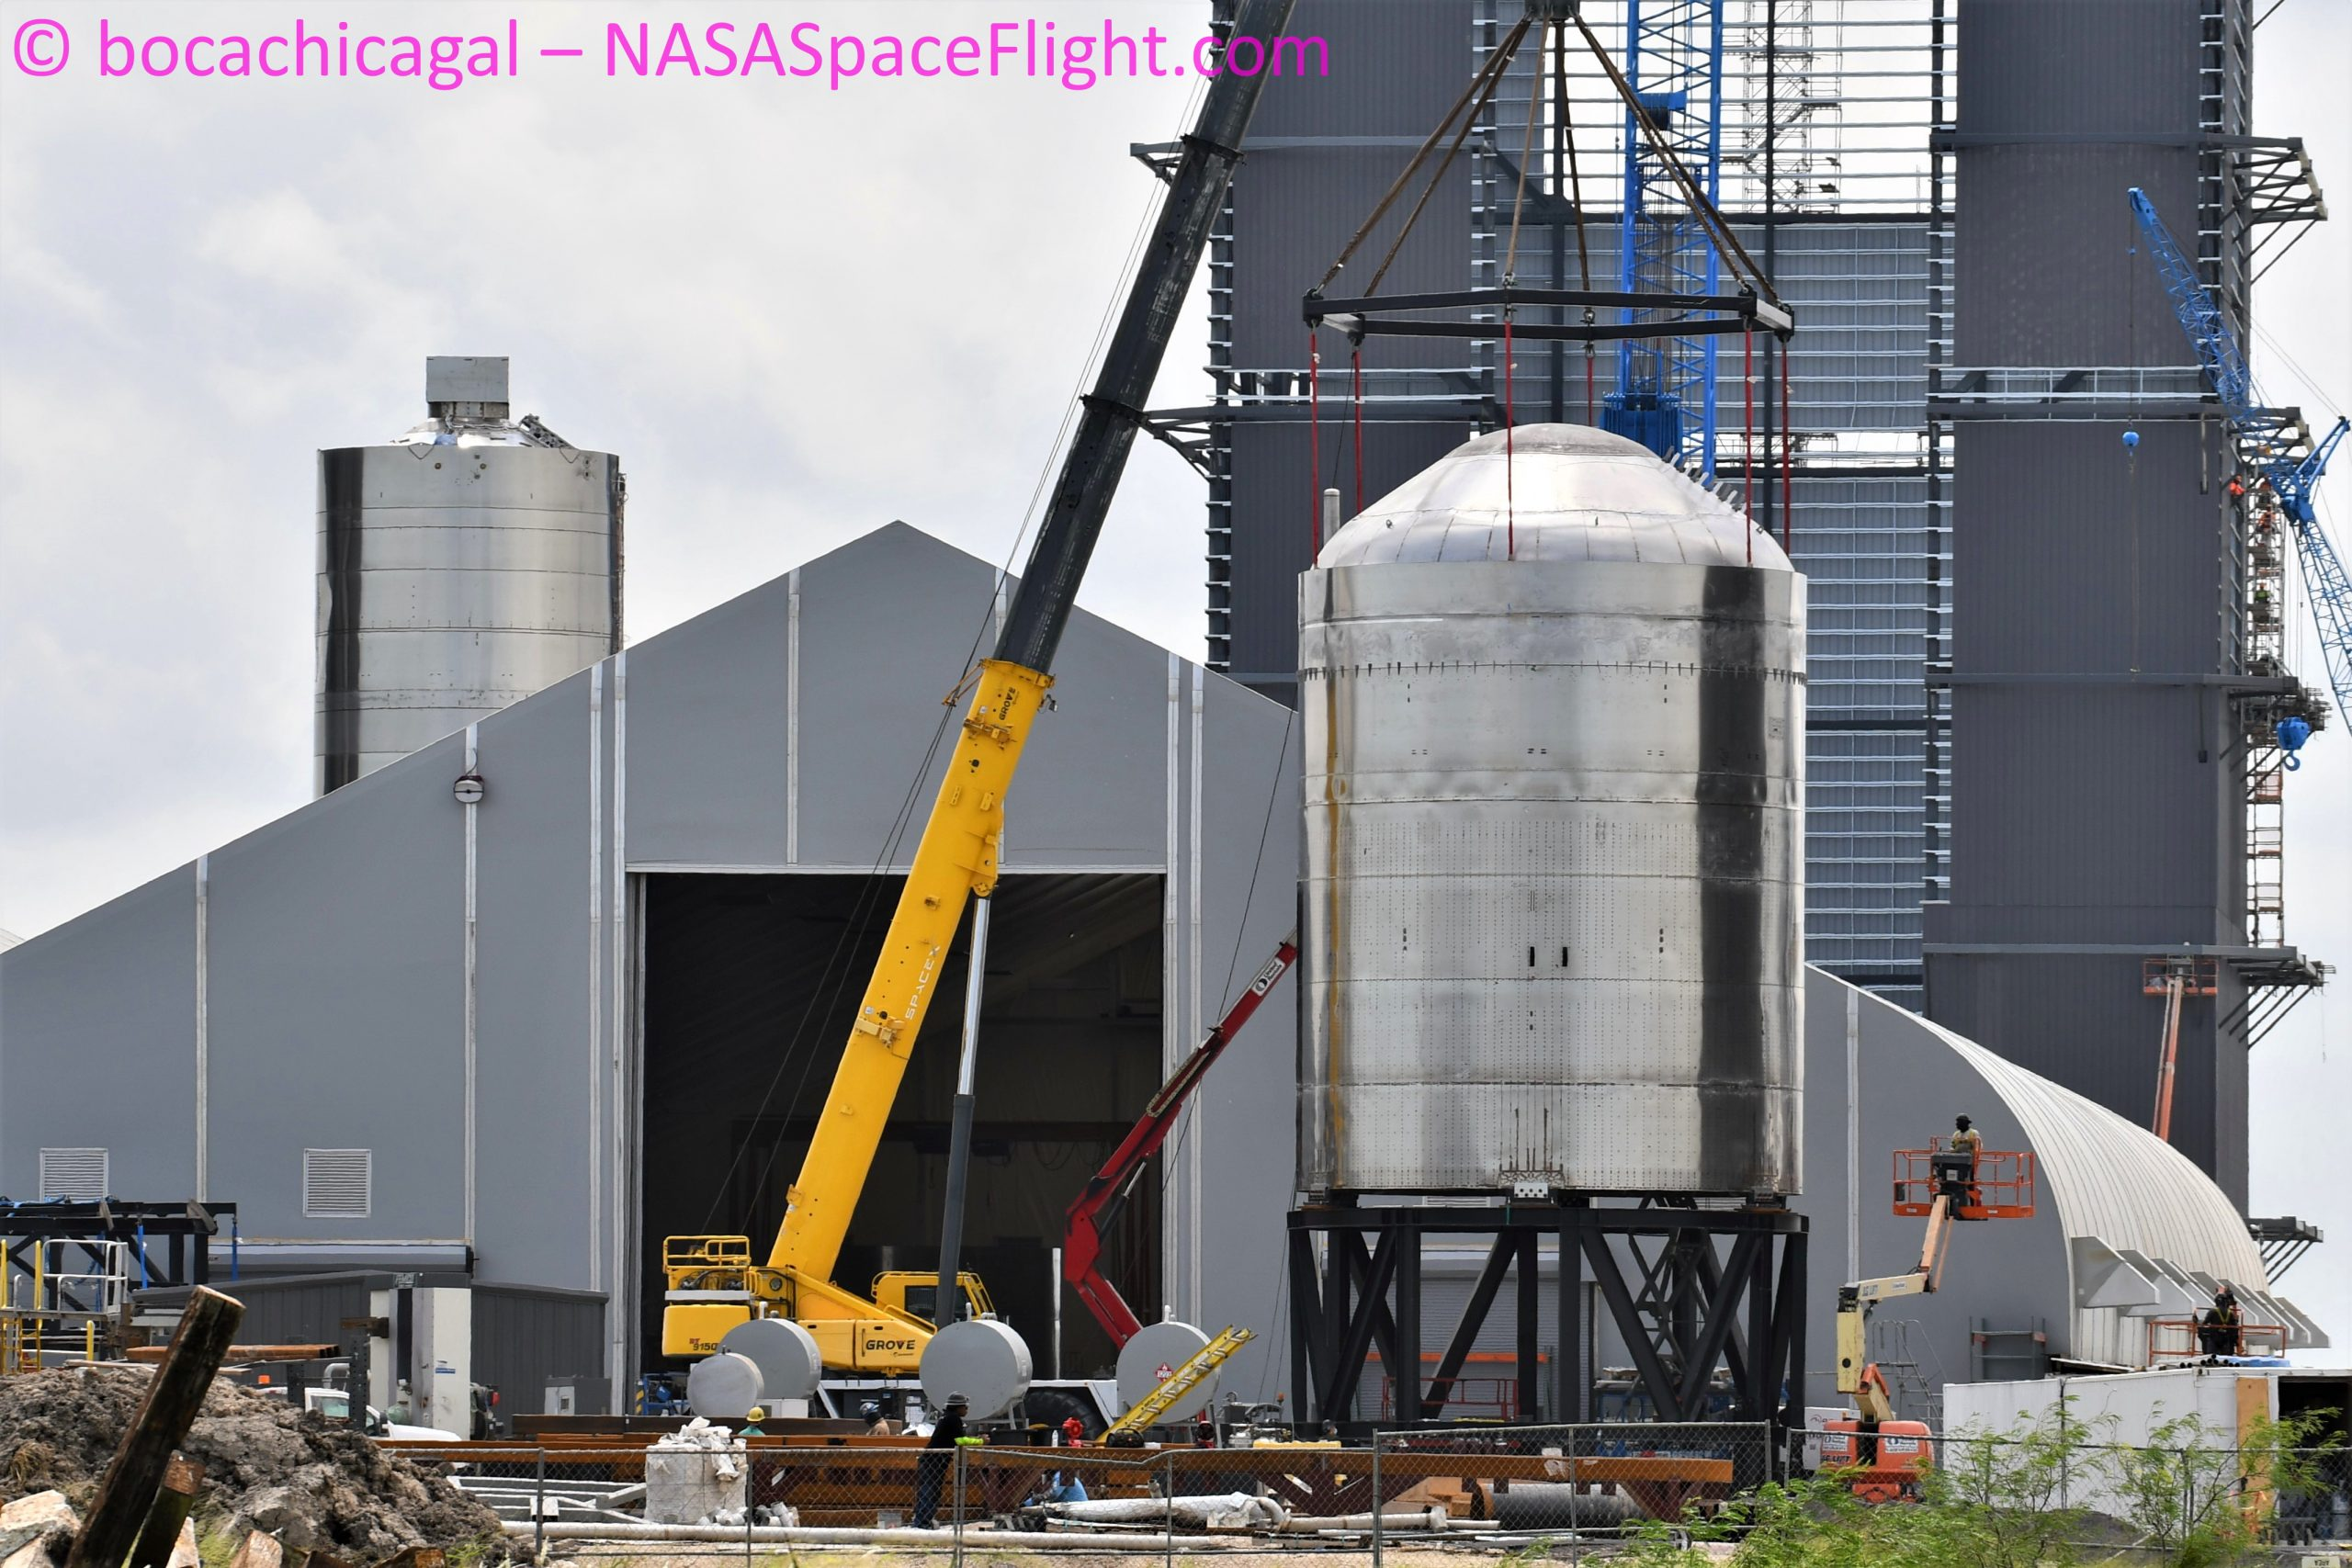 Starship Boca Chica 083020 (NASASpaceflight – bocachicagal) SN7.1 test tank 1